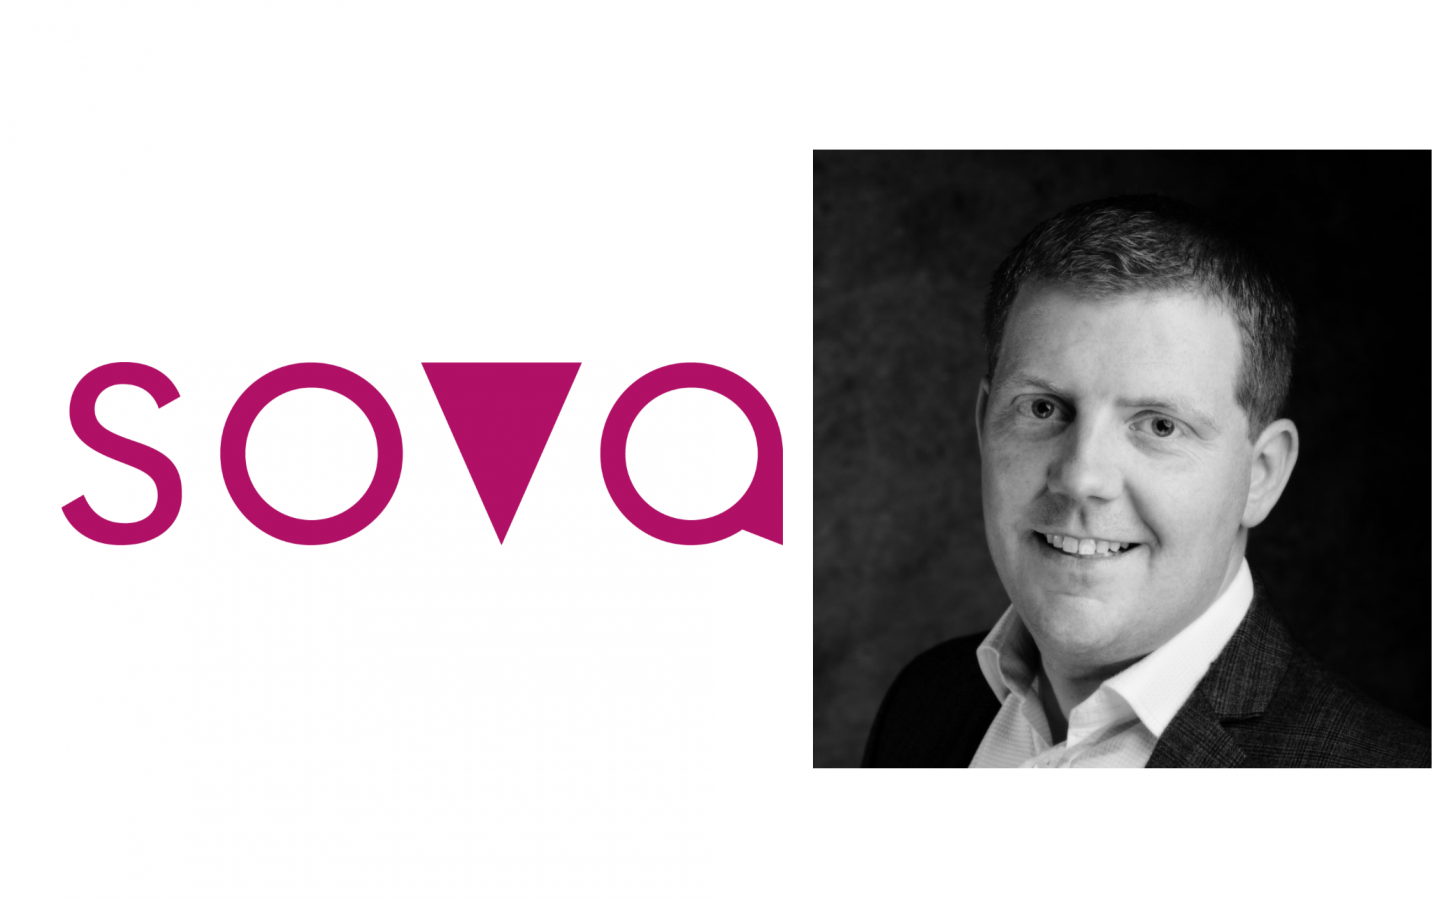 Gavin Mulcahy - Combining Psychology with the Latest Digital Technology